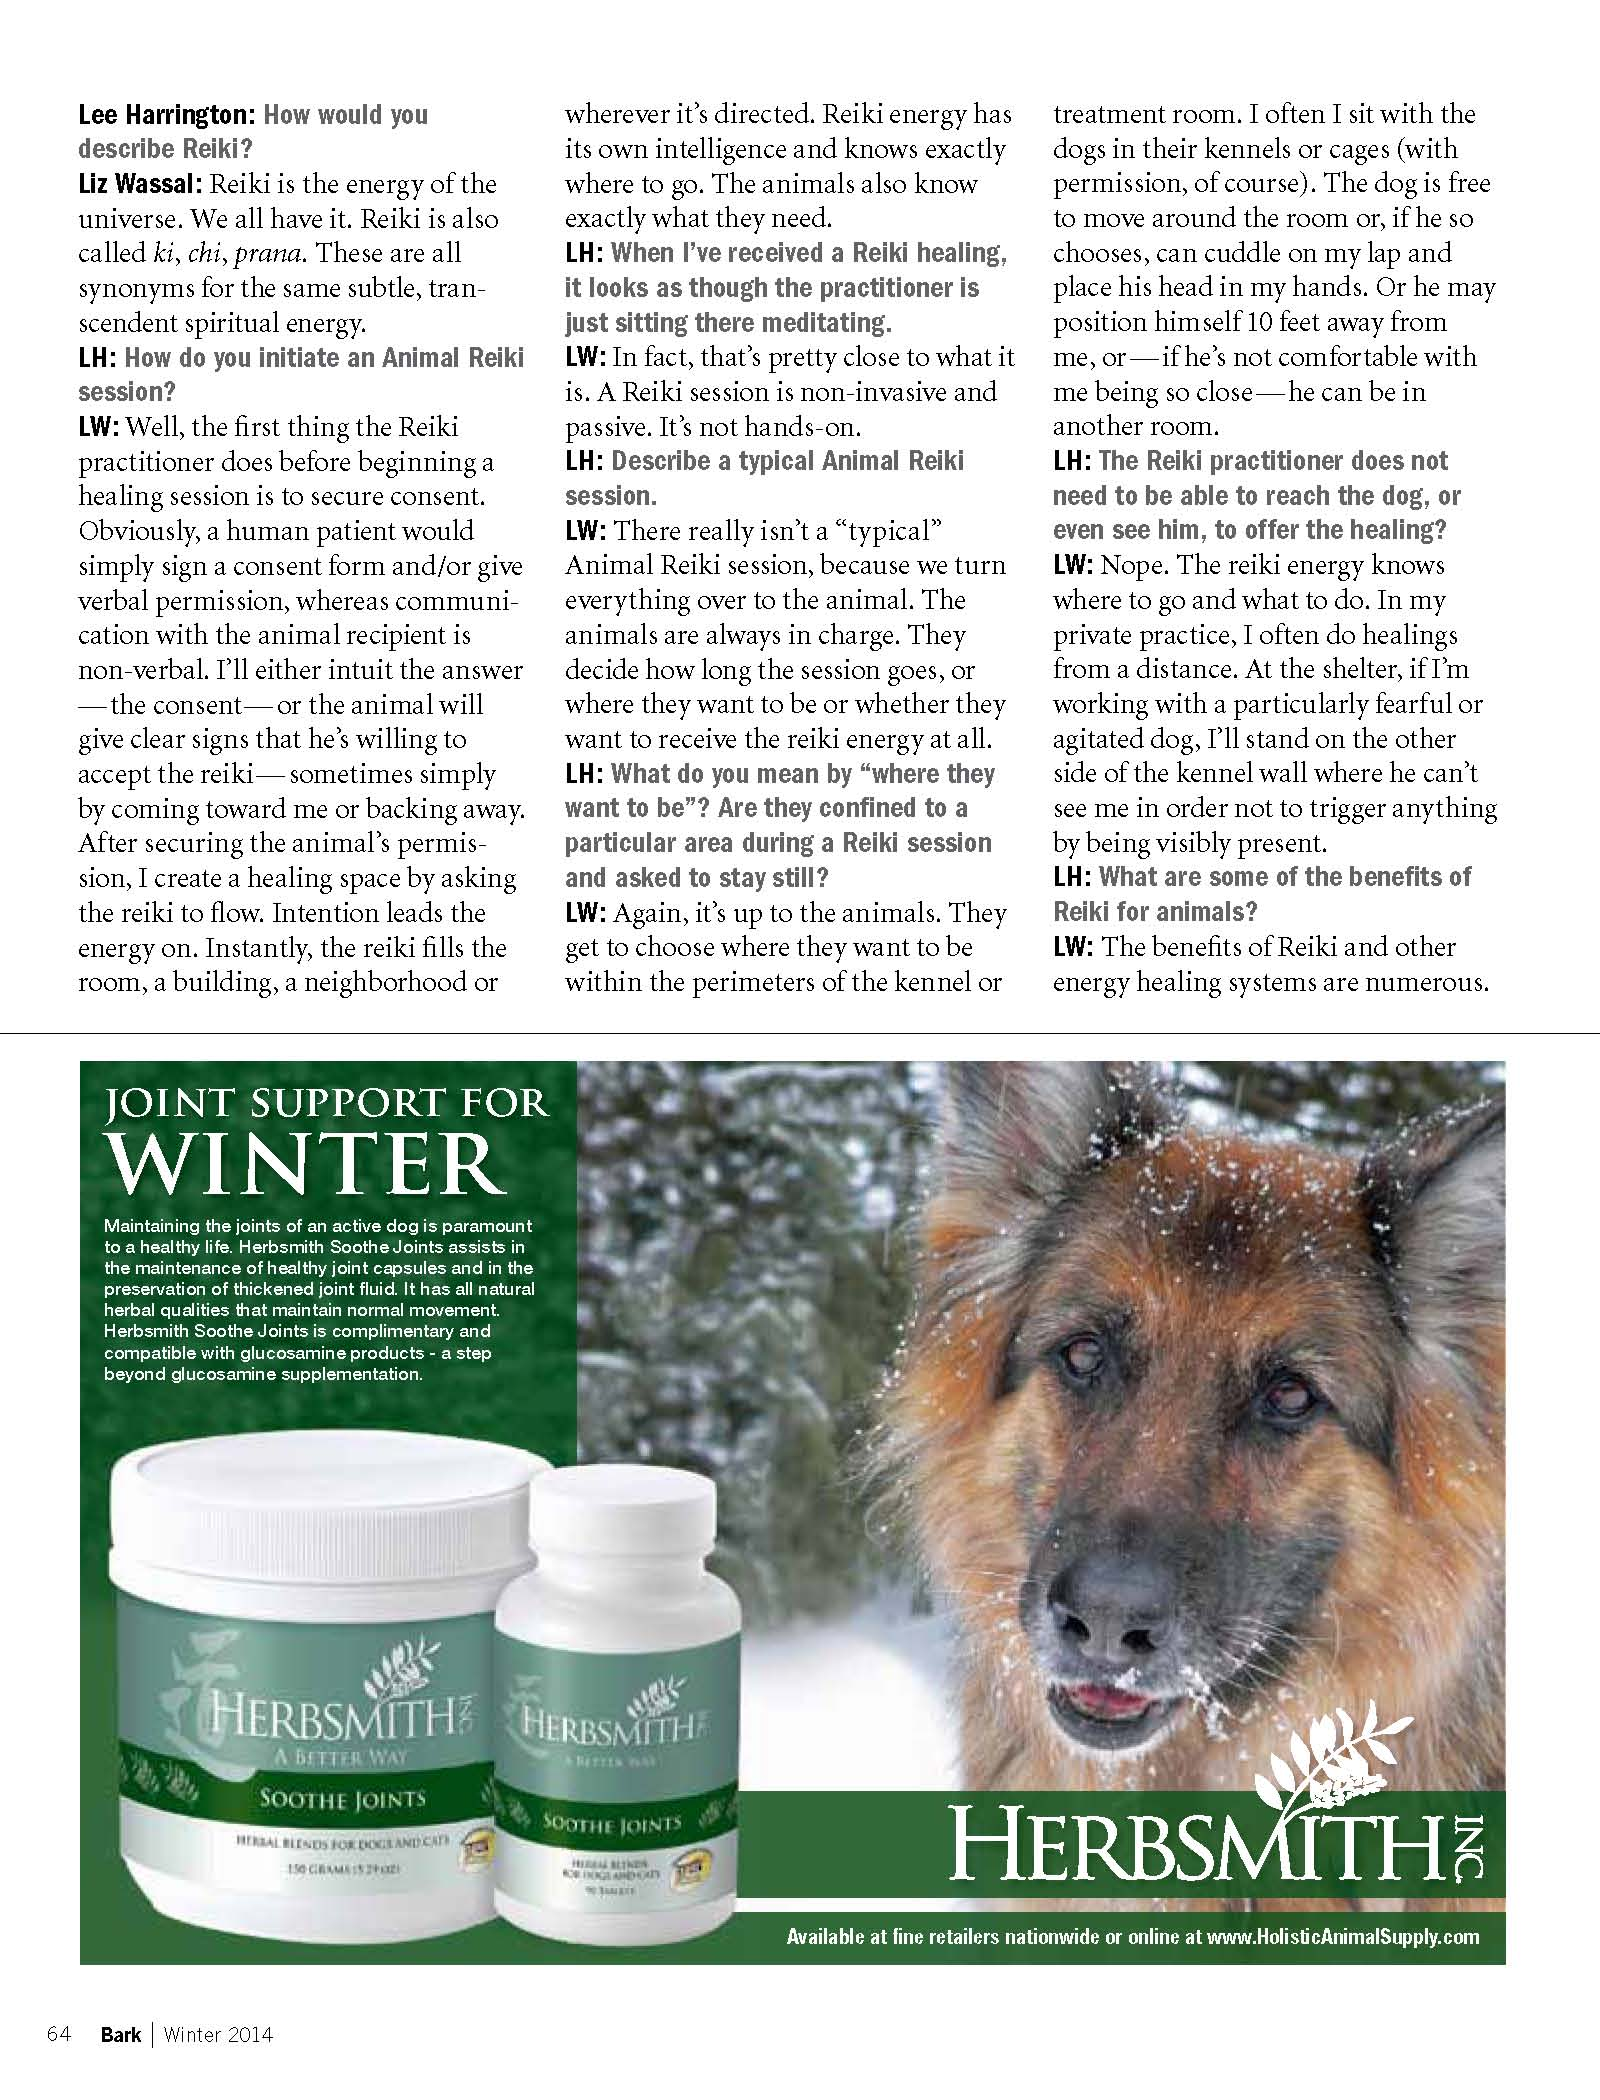 63-65_Reiki_Winter14_Bark80_LR_Page_2